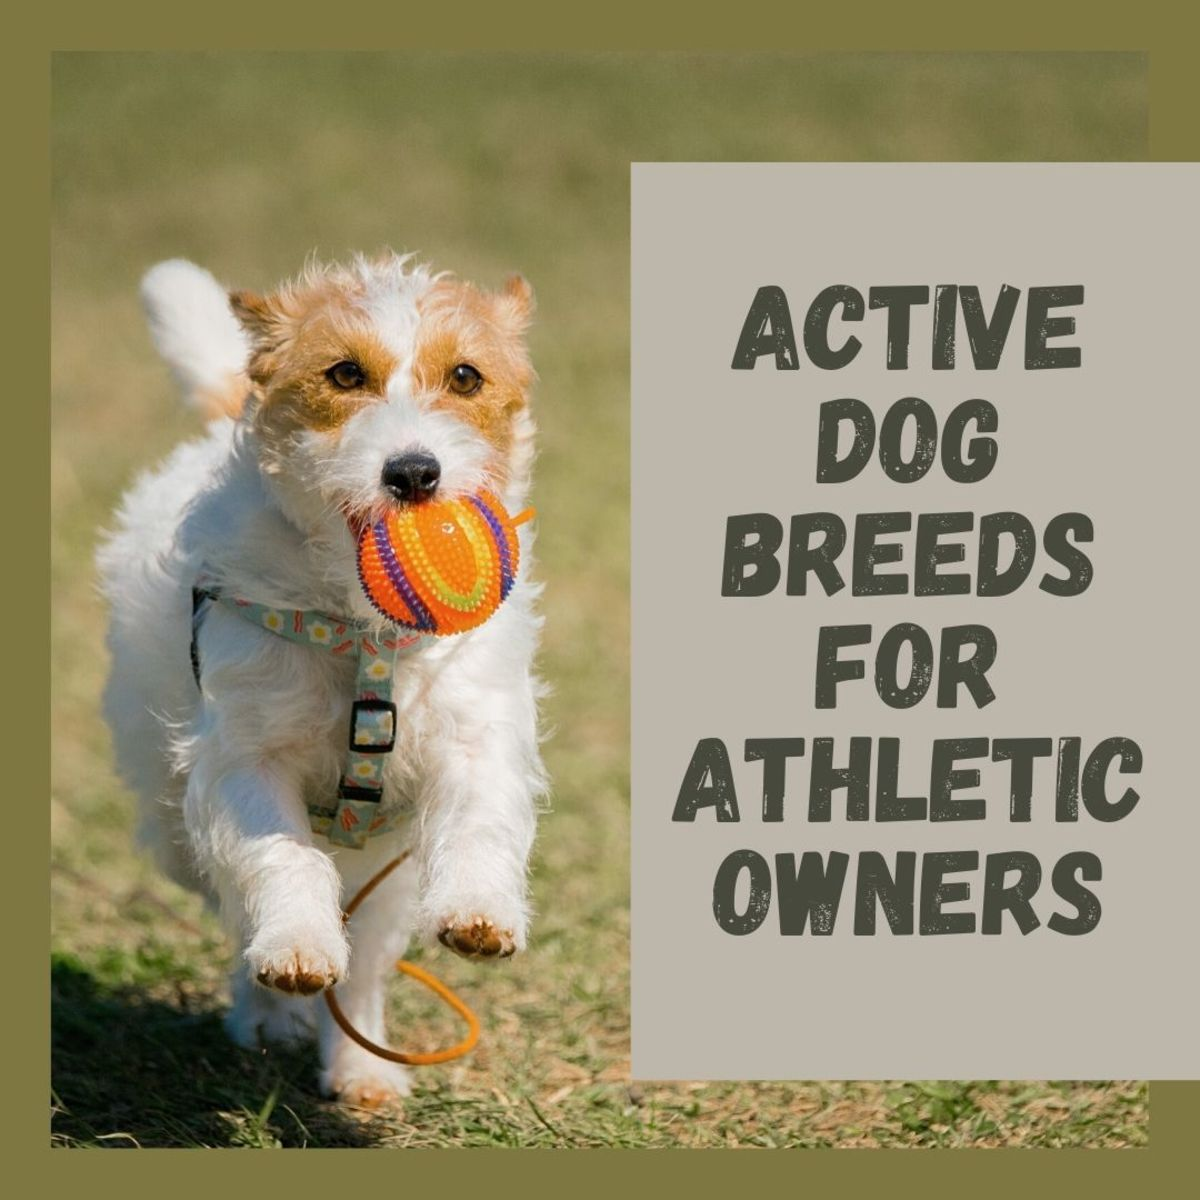 Jack Russell Terriers, Border Collies, and other active dogs for the athletic owner